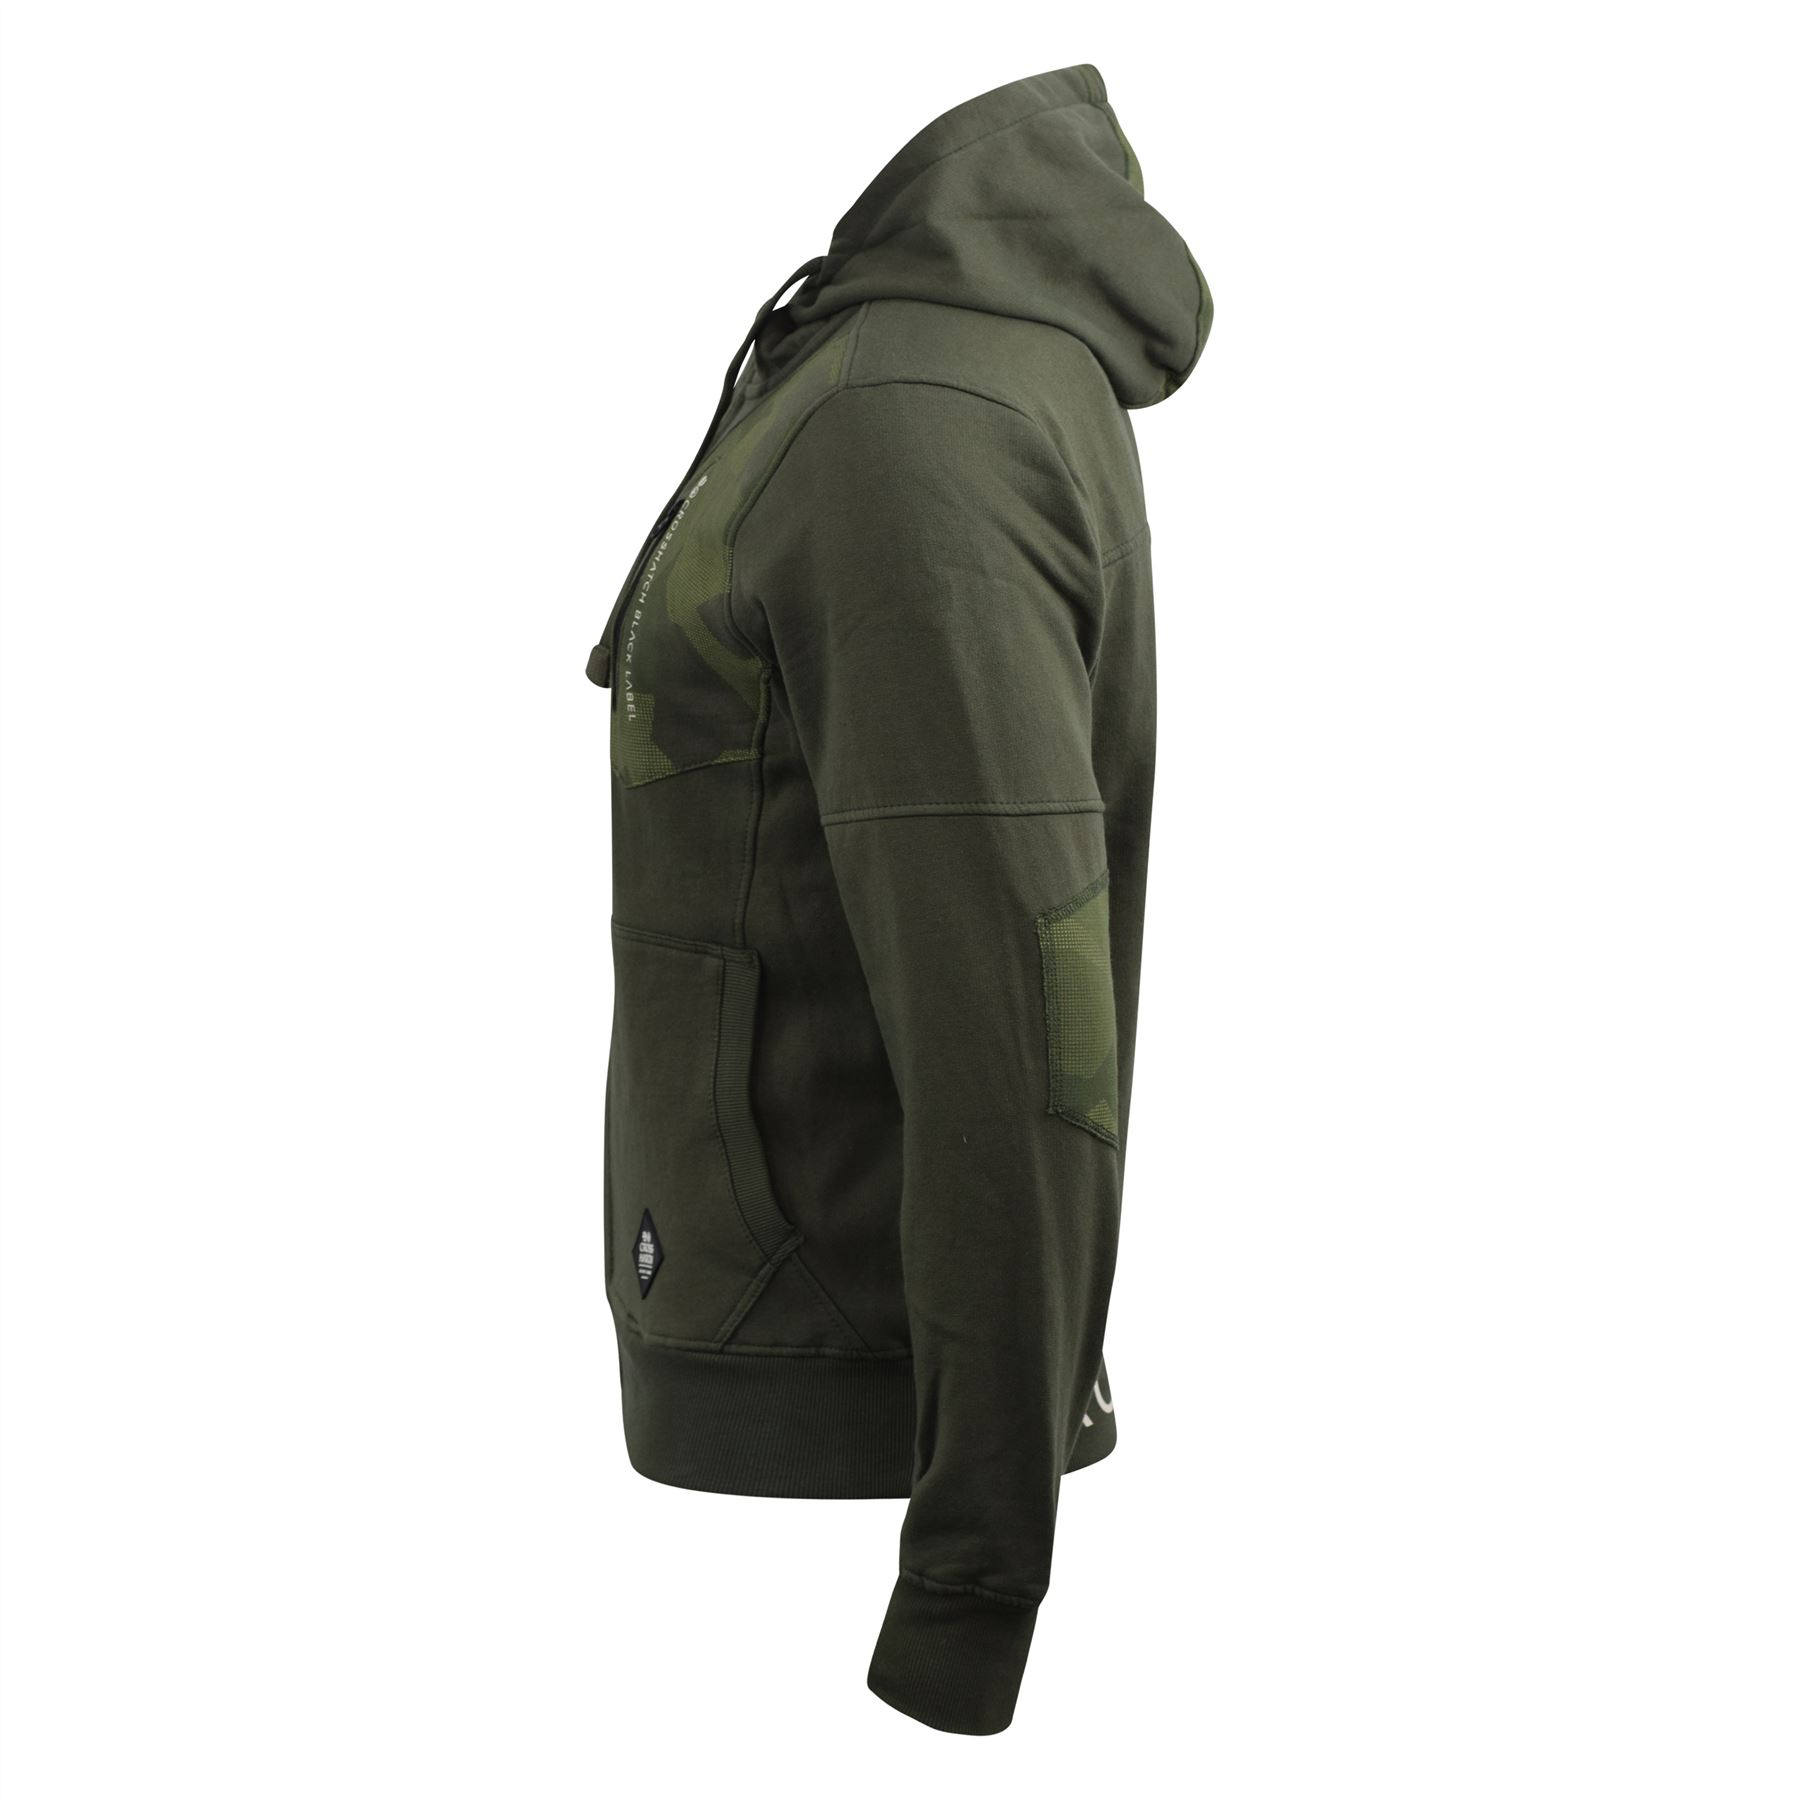 Mens-Hoodie-Crosshatch-Full-Zip-Sweatshirt-Hooded-Jumper-Top-Pullover-Radzim thumbnail 3